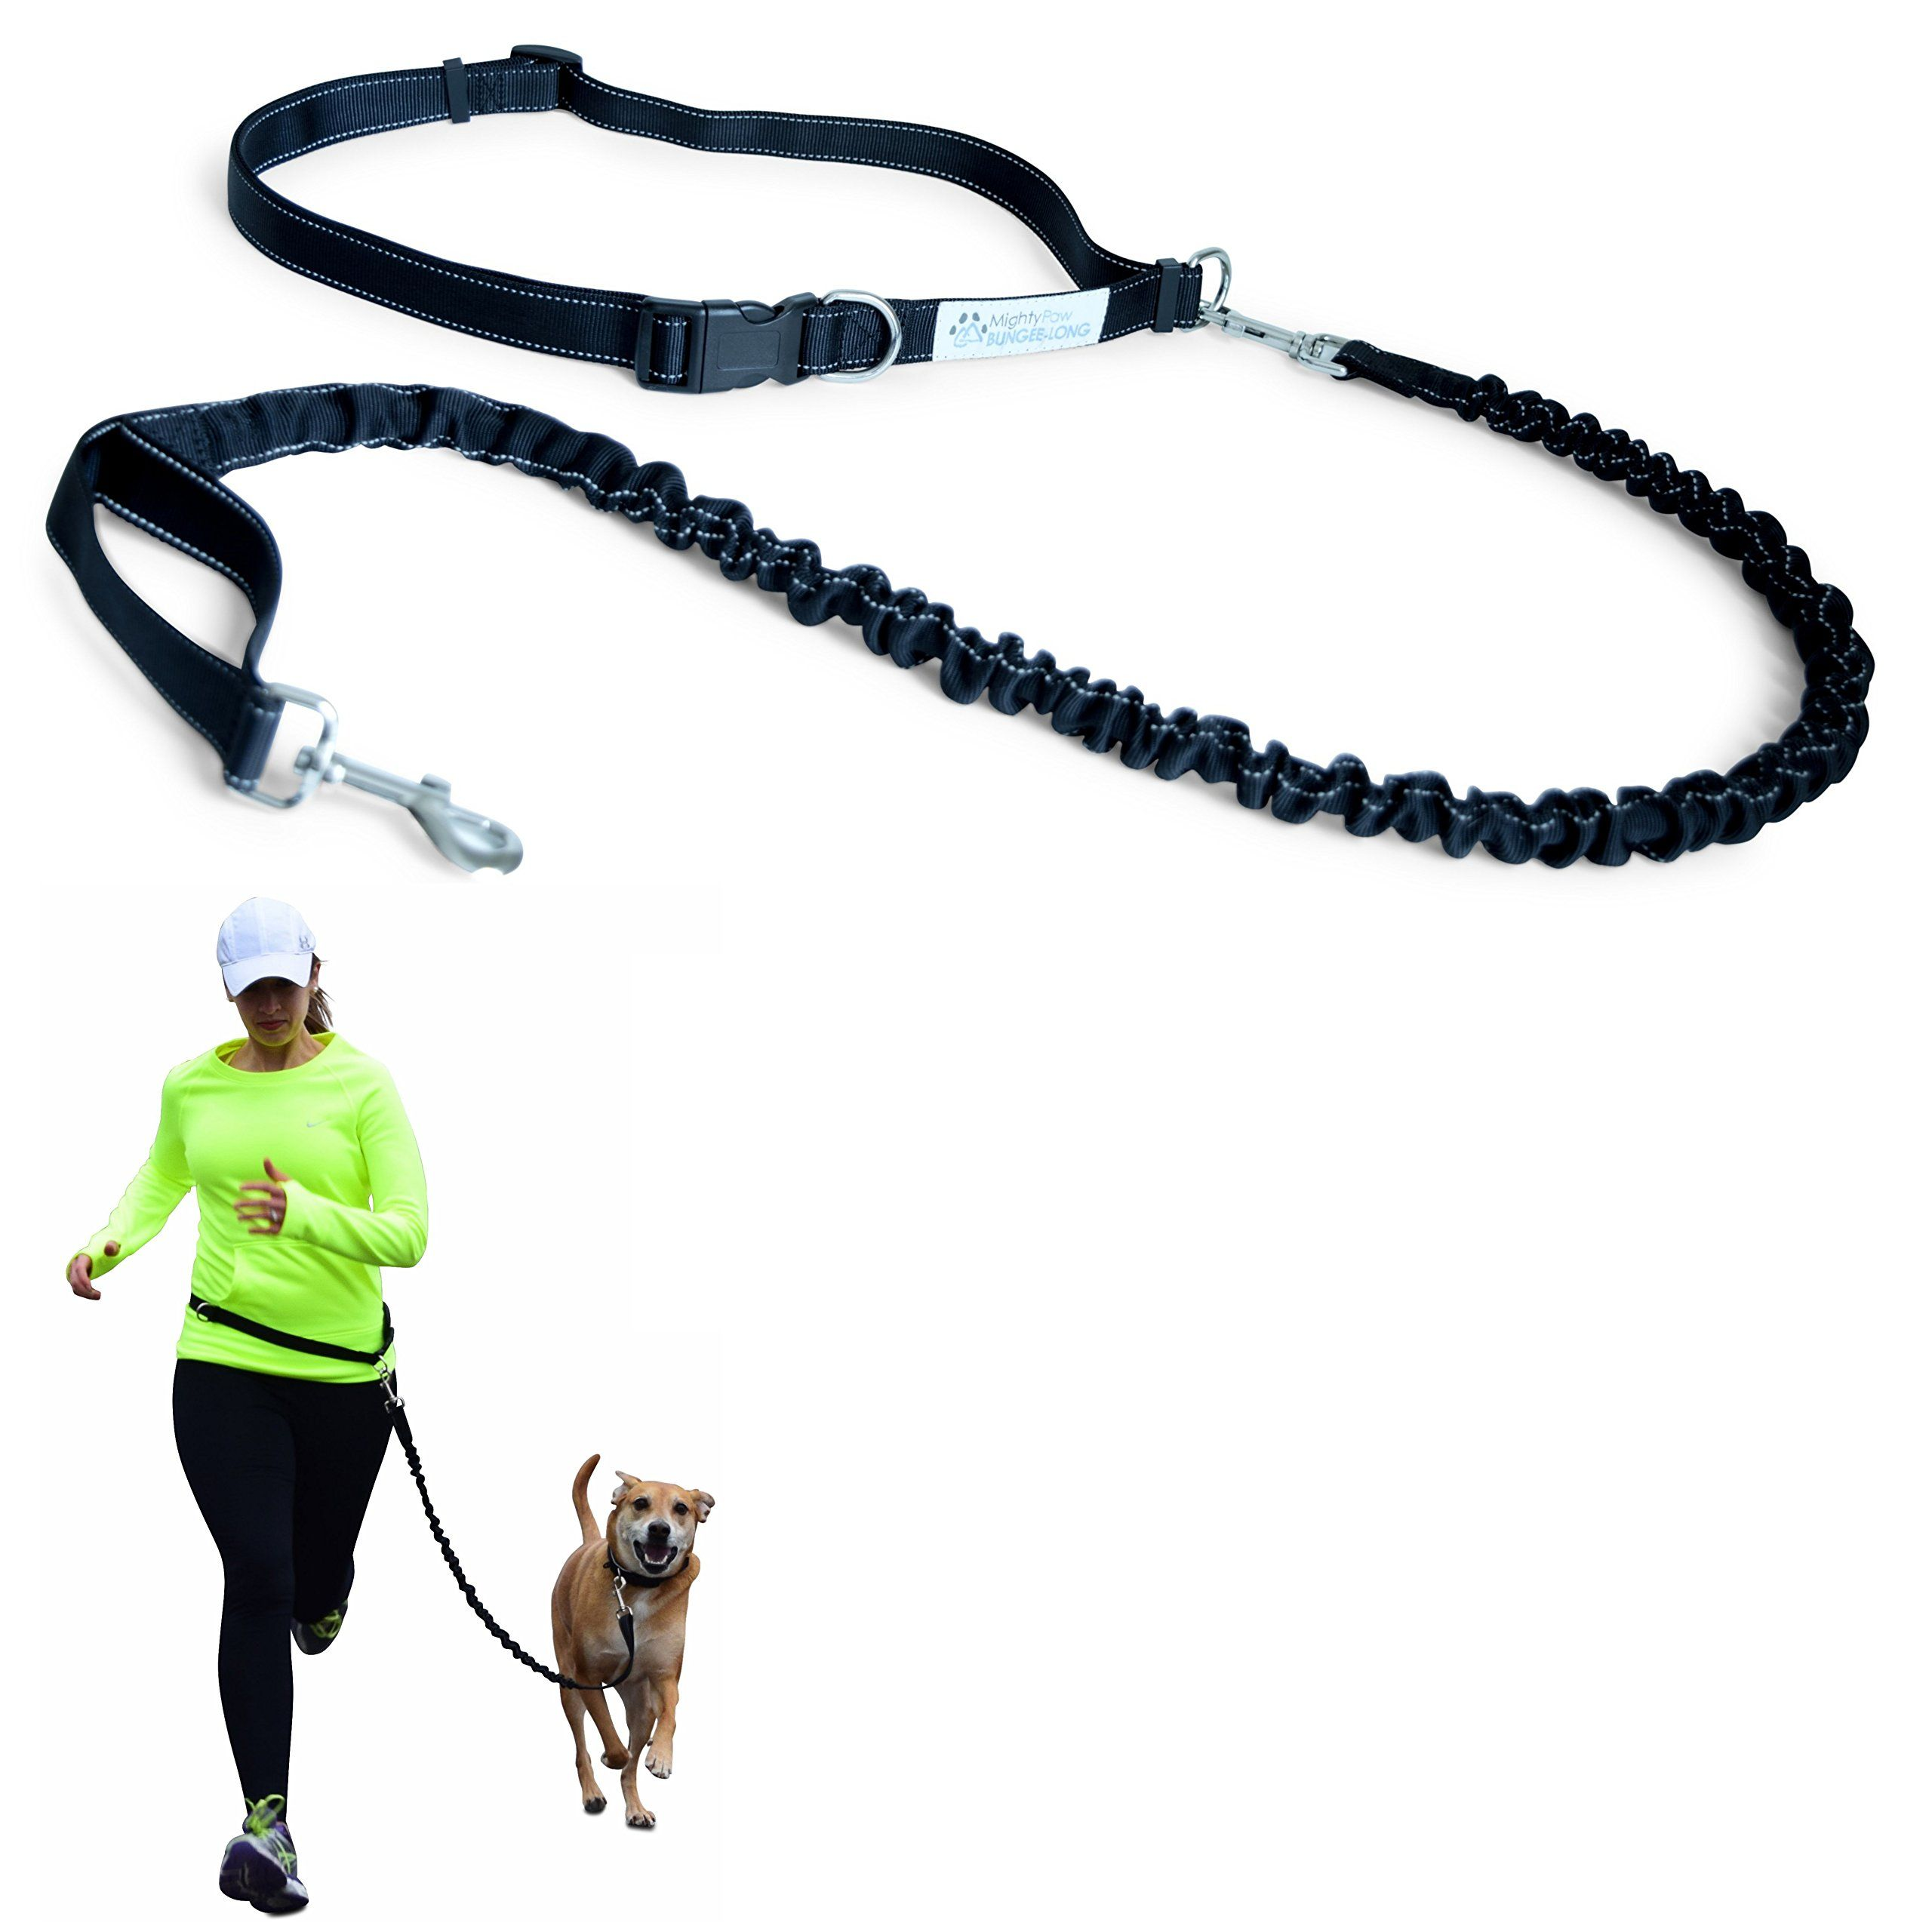 Mighty Paw Hands Free Dog Leash with Extra Length, Premium Running Dog Leash, Lightweight Reflective Bungee Dog Leash